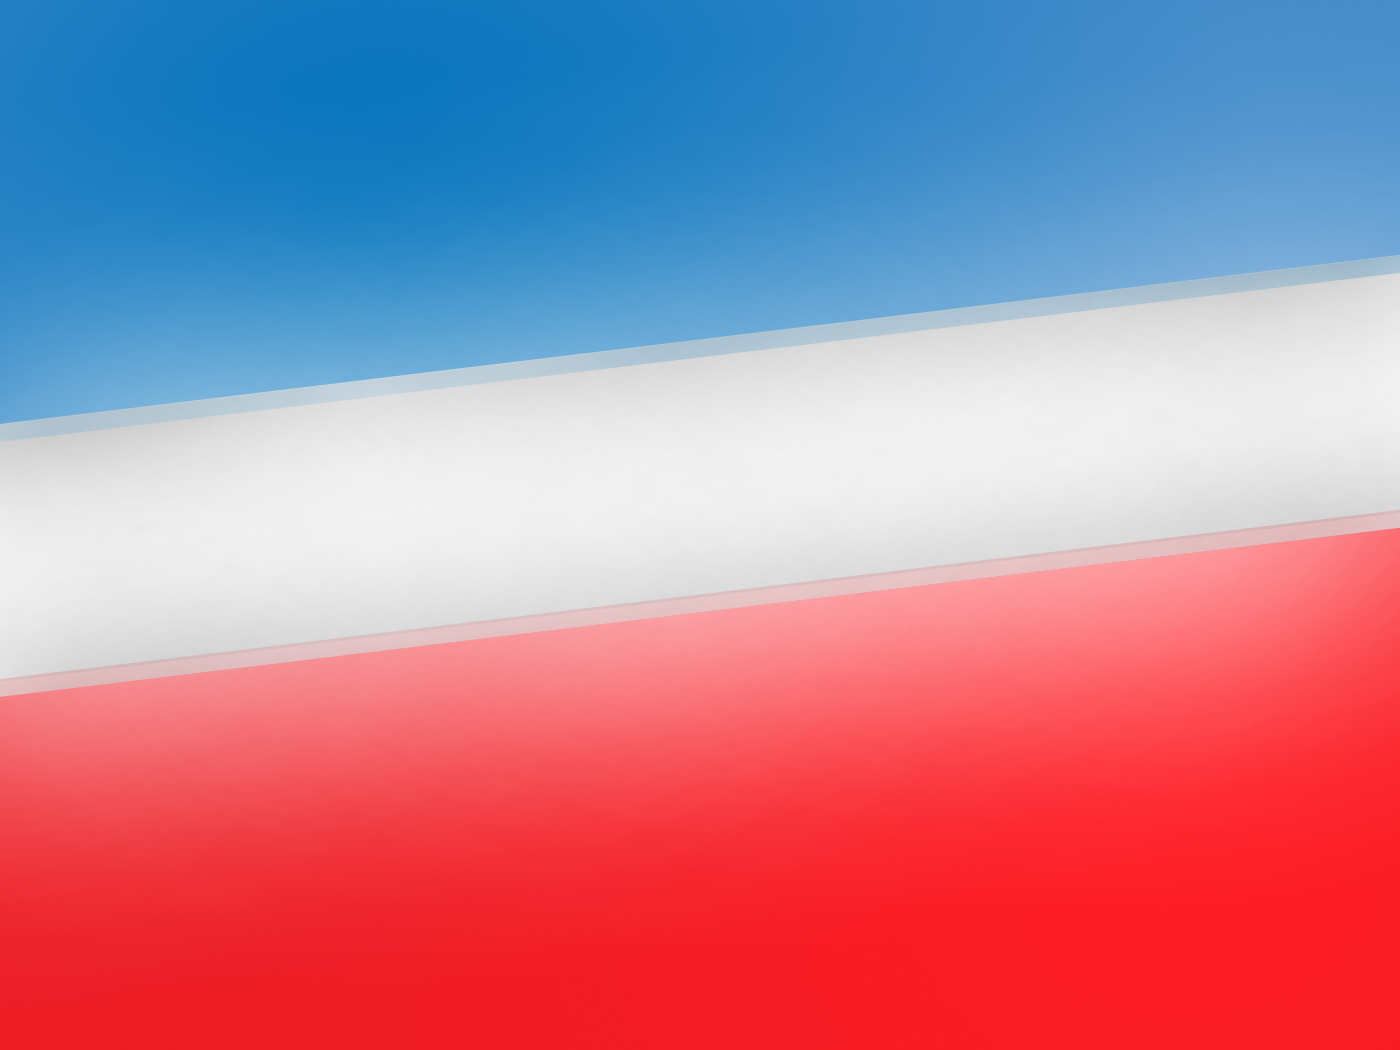 red white and blue background powerpoint backgrounds for free powerpoint templates seek gif